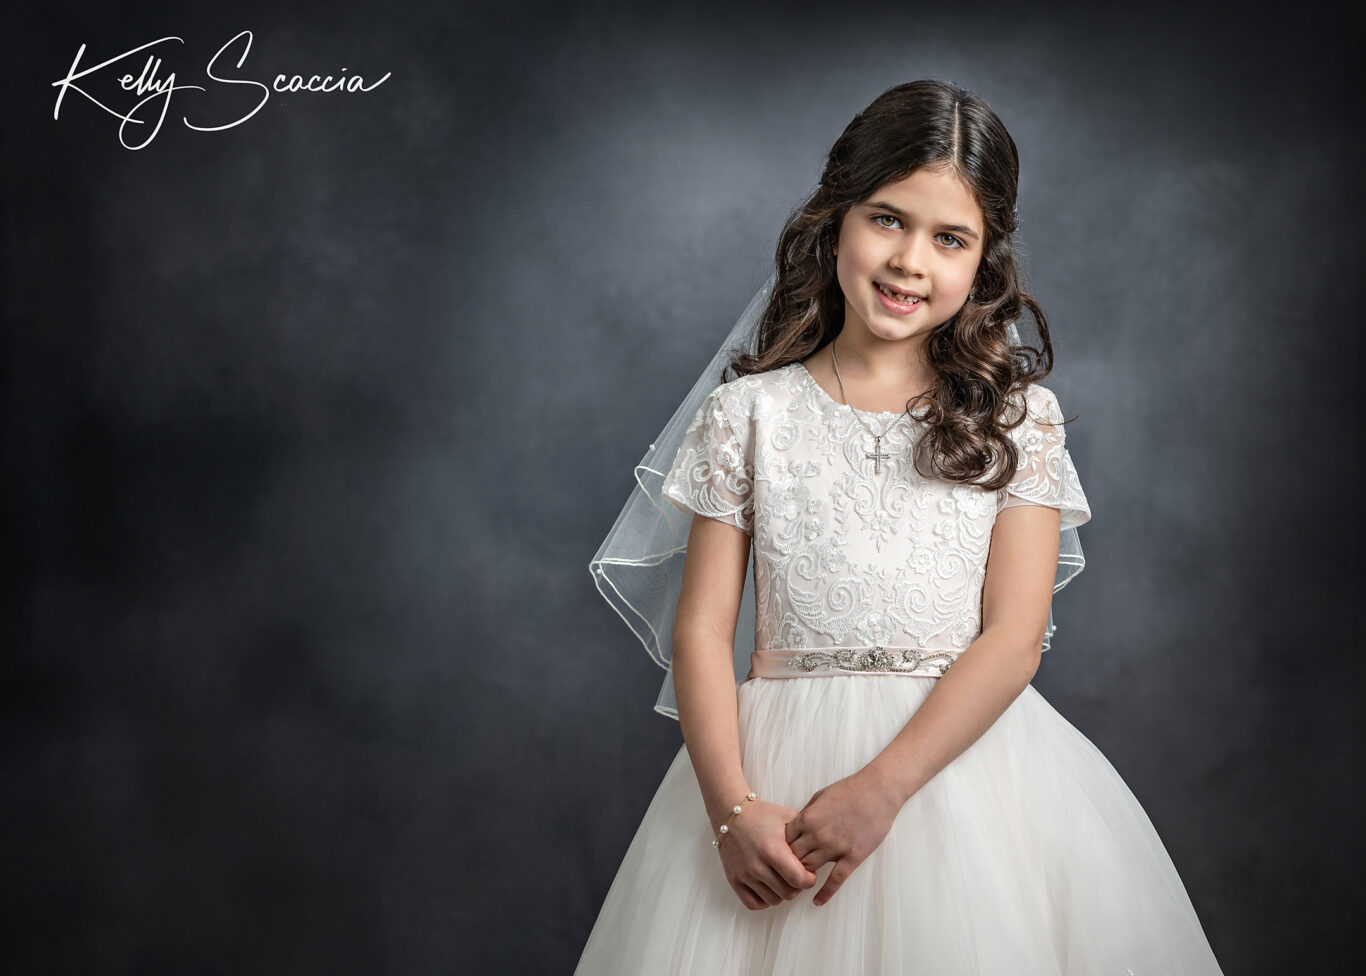 Studio communion girl portrait wearing traditional white dress, veil, crown and rosary in hands with a smile on her face looking at you